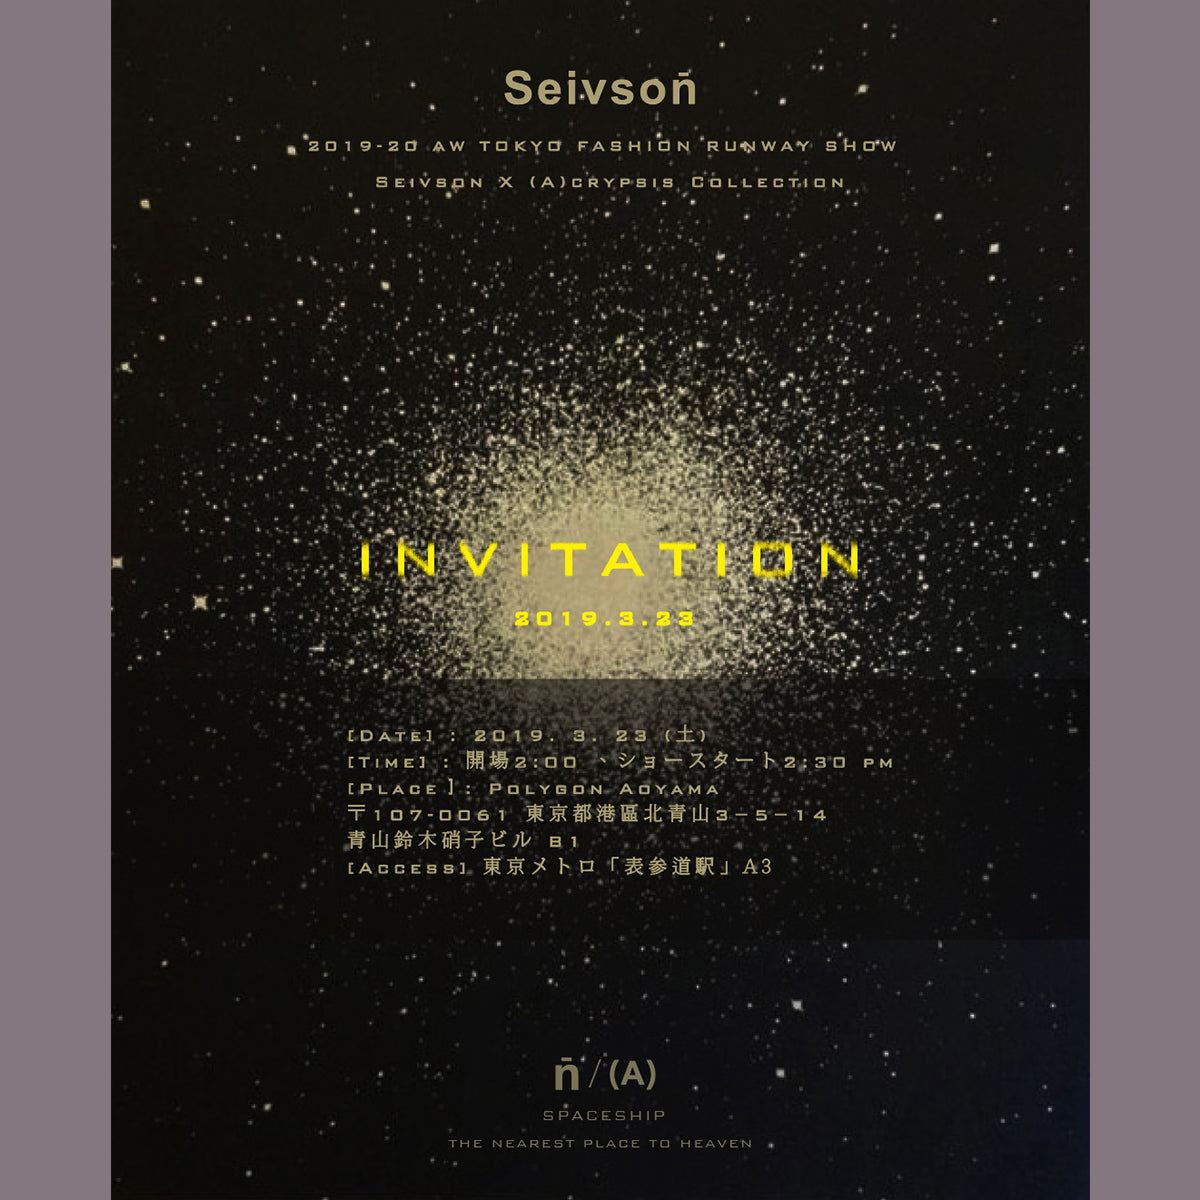 Seivson 2019AW RUNWAY SHOW in Japan